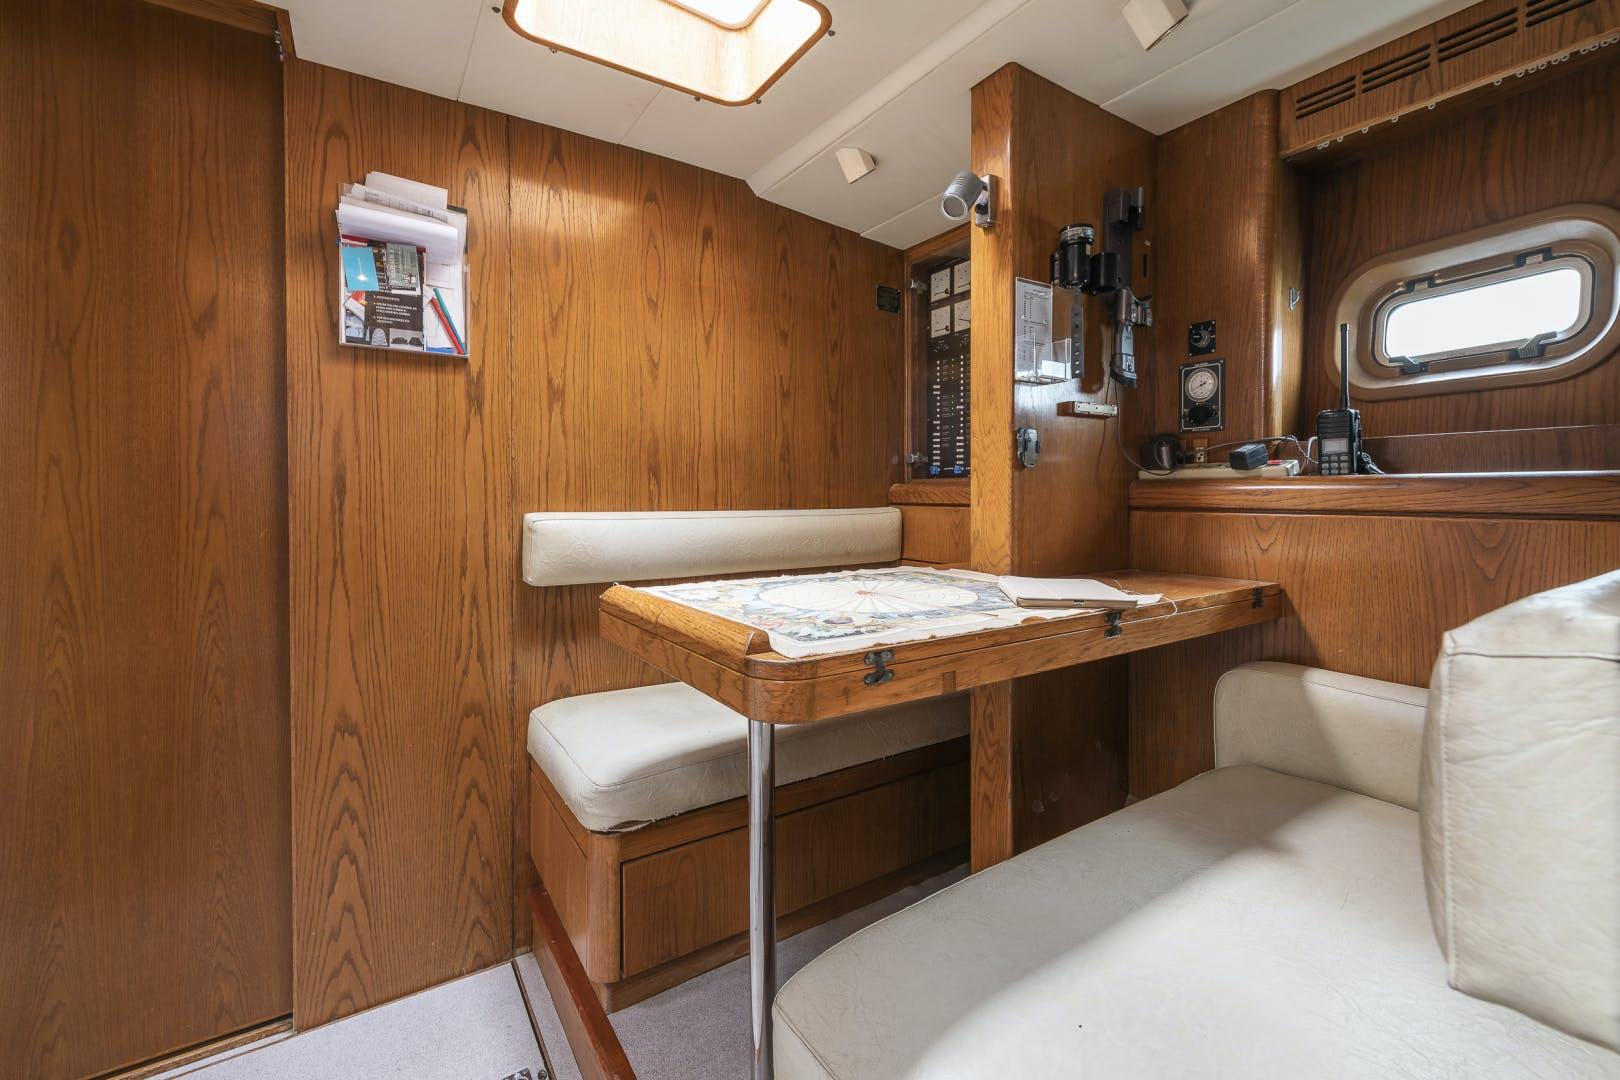 1992 Other 84' Southampton Yacht Services - Tony Castro Rocio | Picture 3 of 19